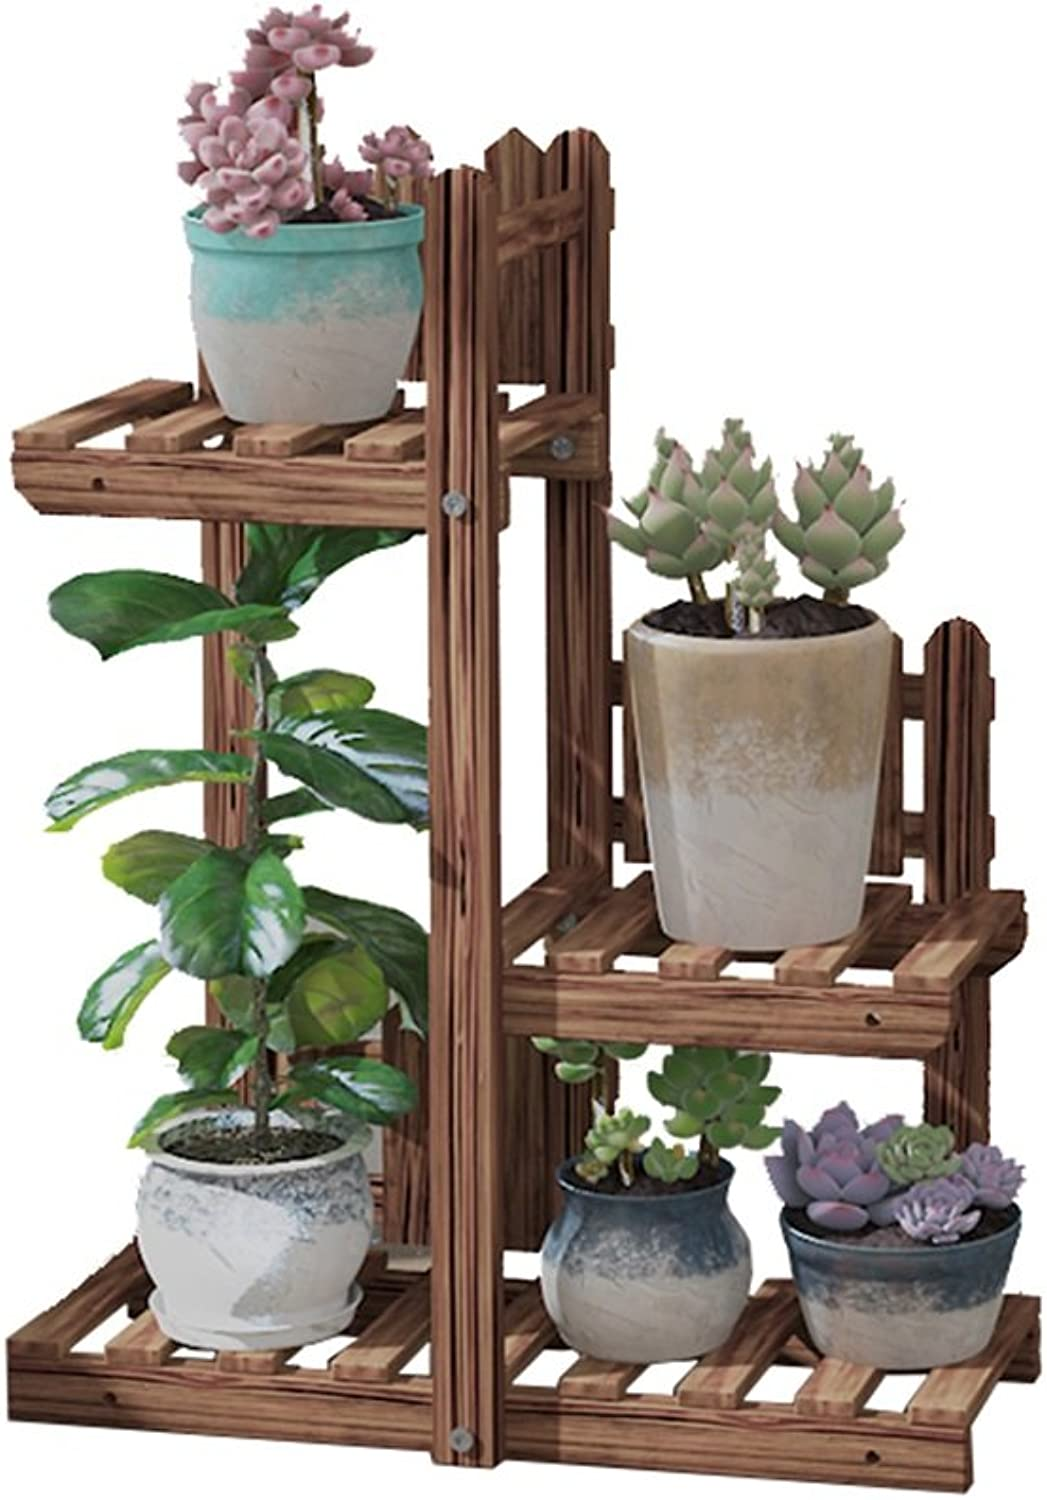 NYDZDM Wooden Flower Stand Indoor and Outdoor Multi-Story Space-Saving Solid Wood Balcony Decoration Living Room Display Flower Stand 50L×20W×65H (cm), 19.7L×7.9W×25.6H (inch) (color   Brown)